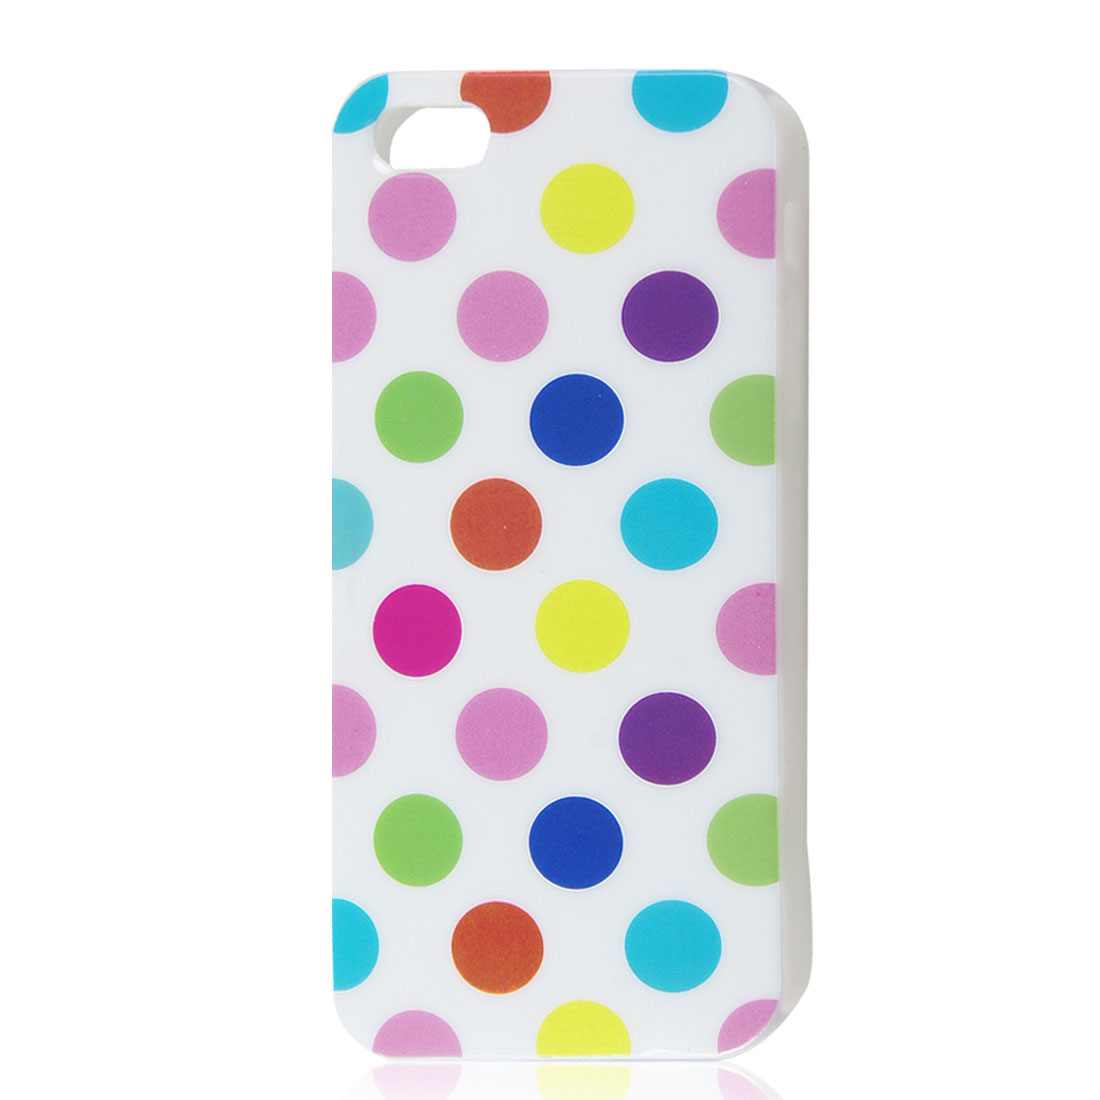 Unique Bargains Assorted Color Polka Dot White Soft Cover Case for Apple iPhone 5 5G 5th